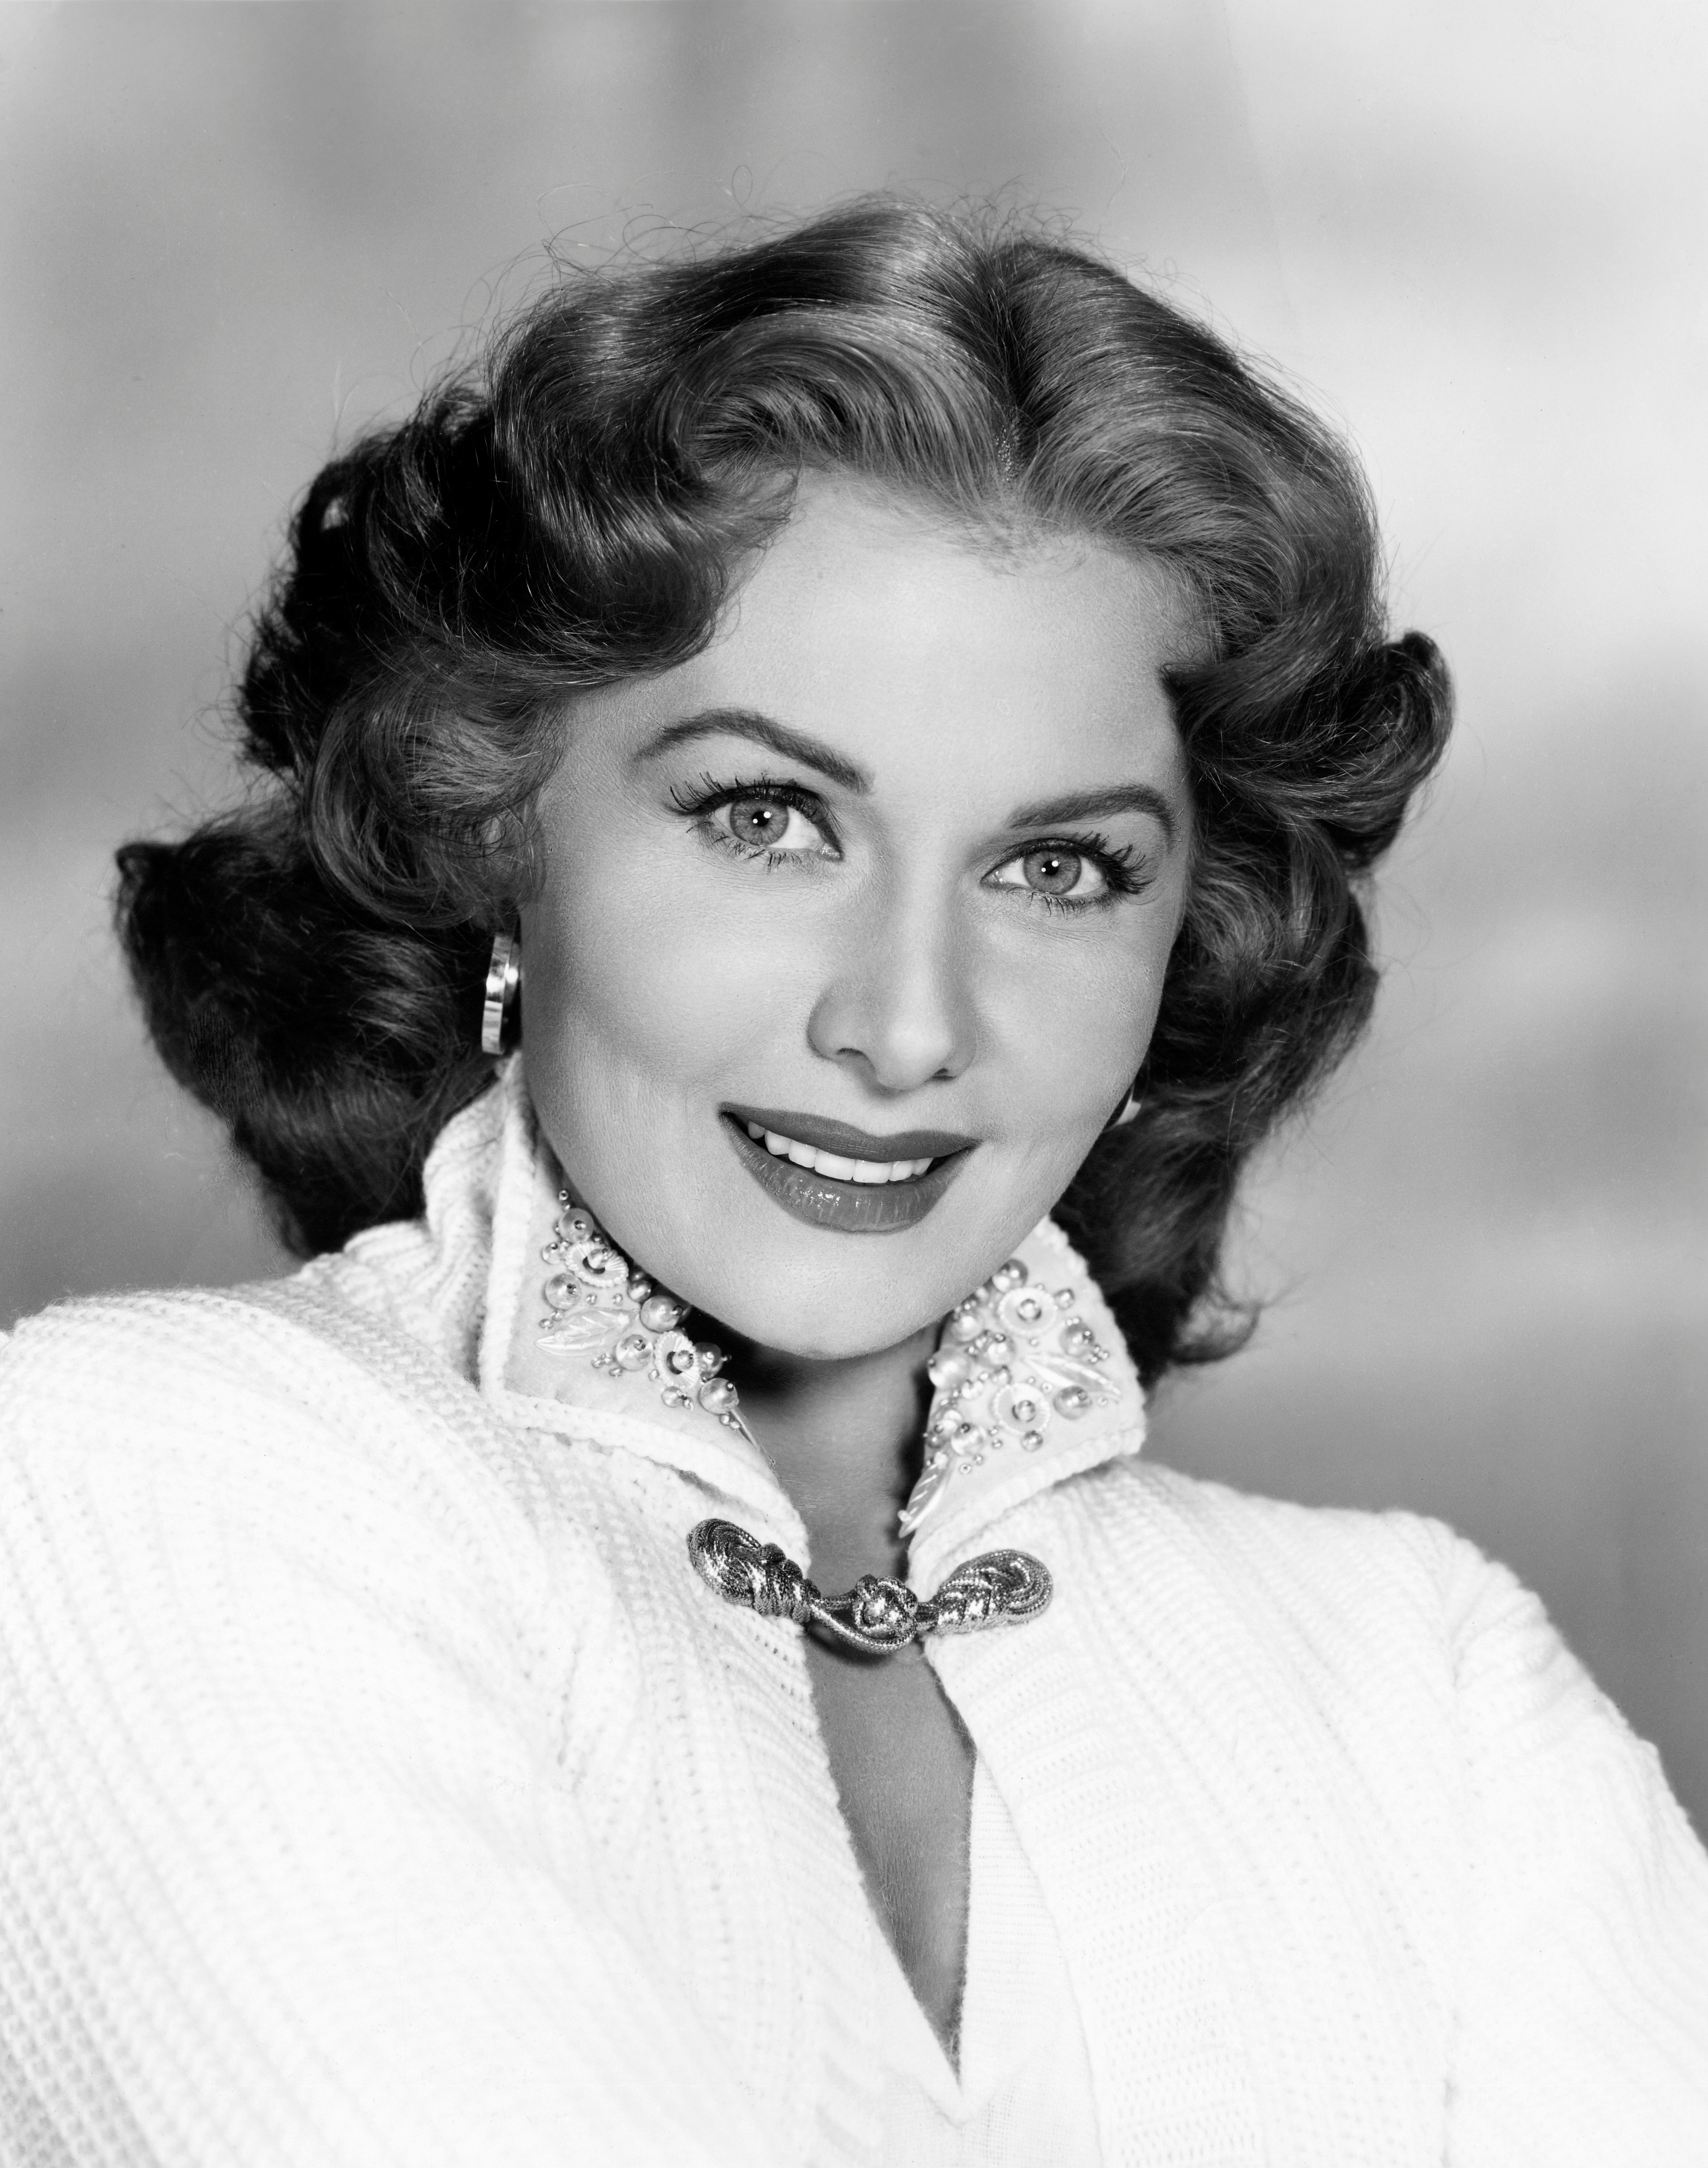 Who was Rhonda Fleming, was she married and what were her most famous films?